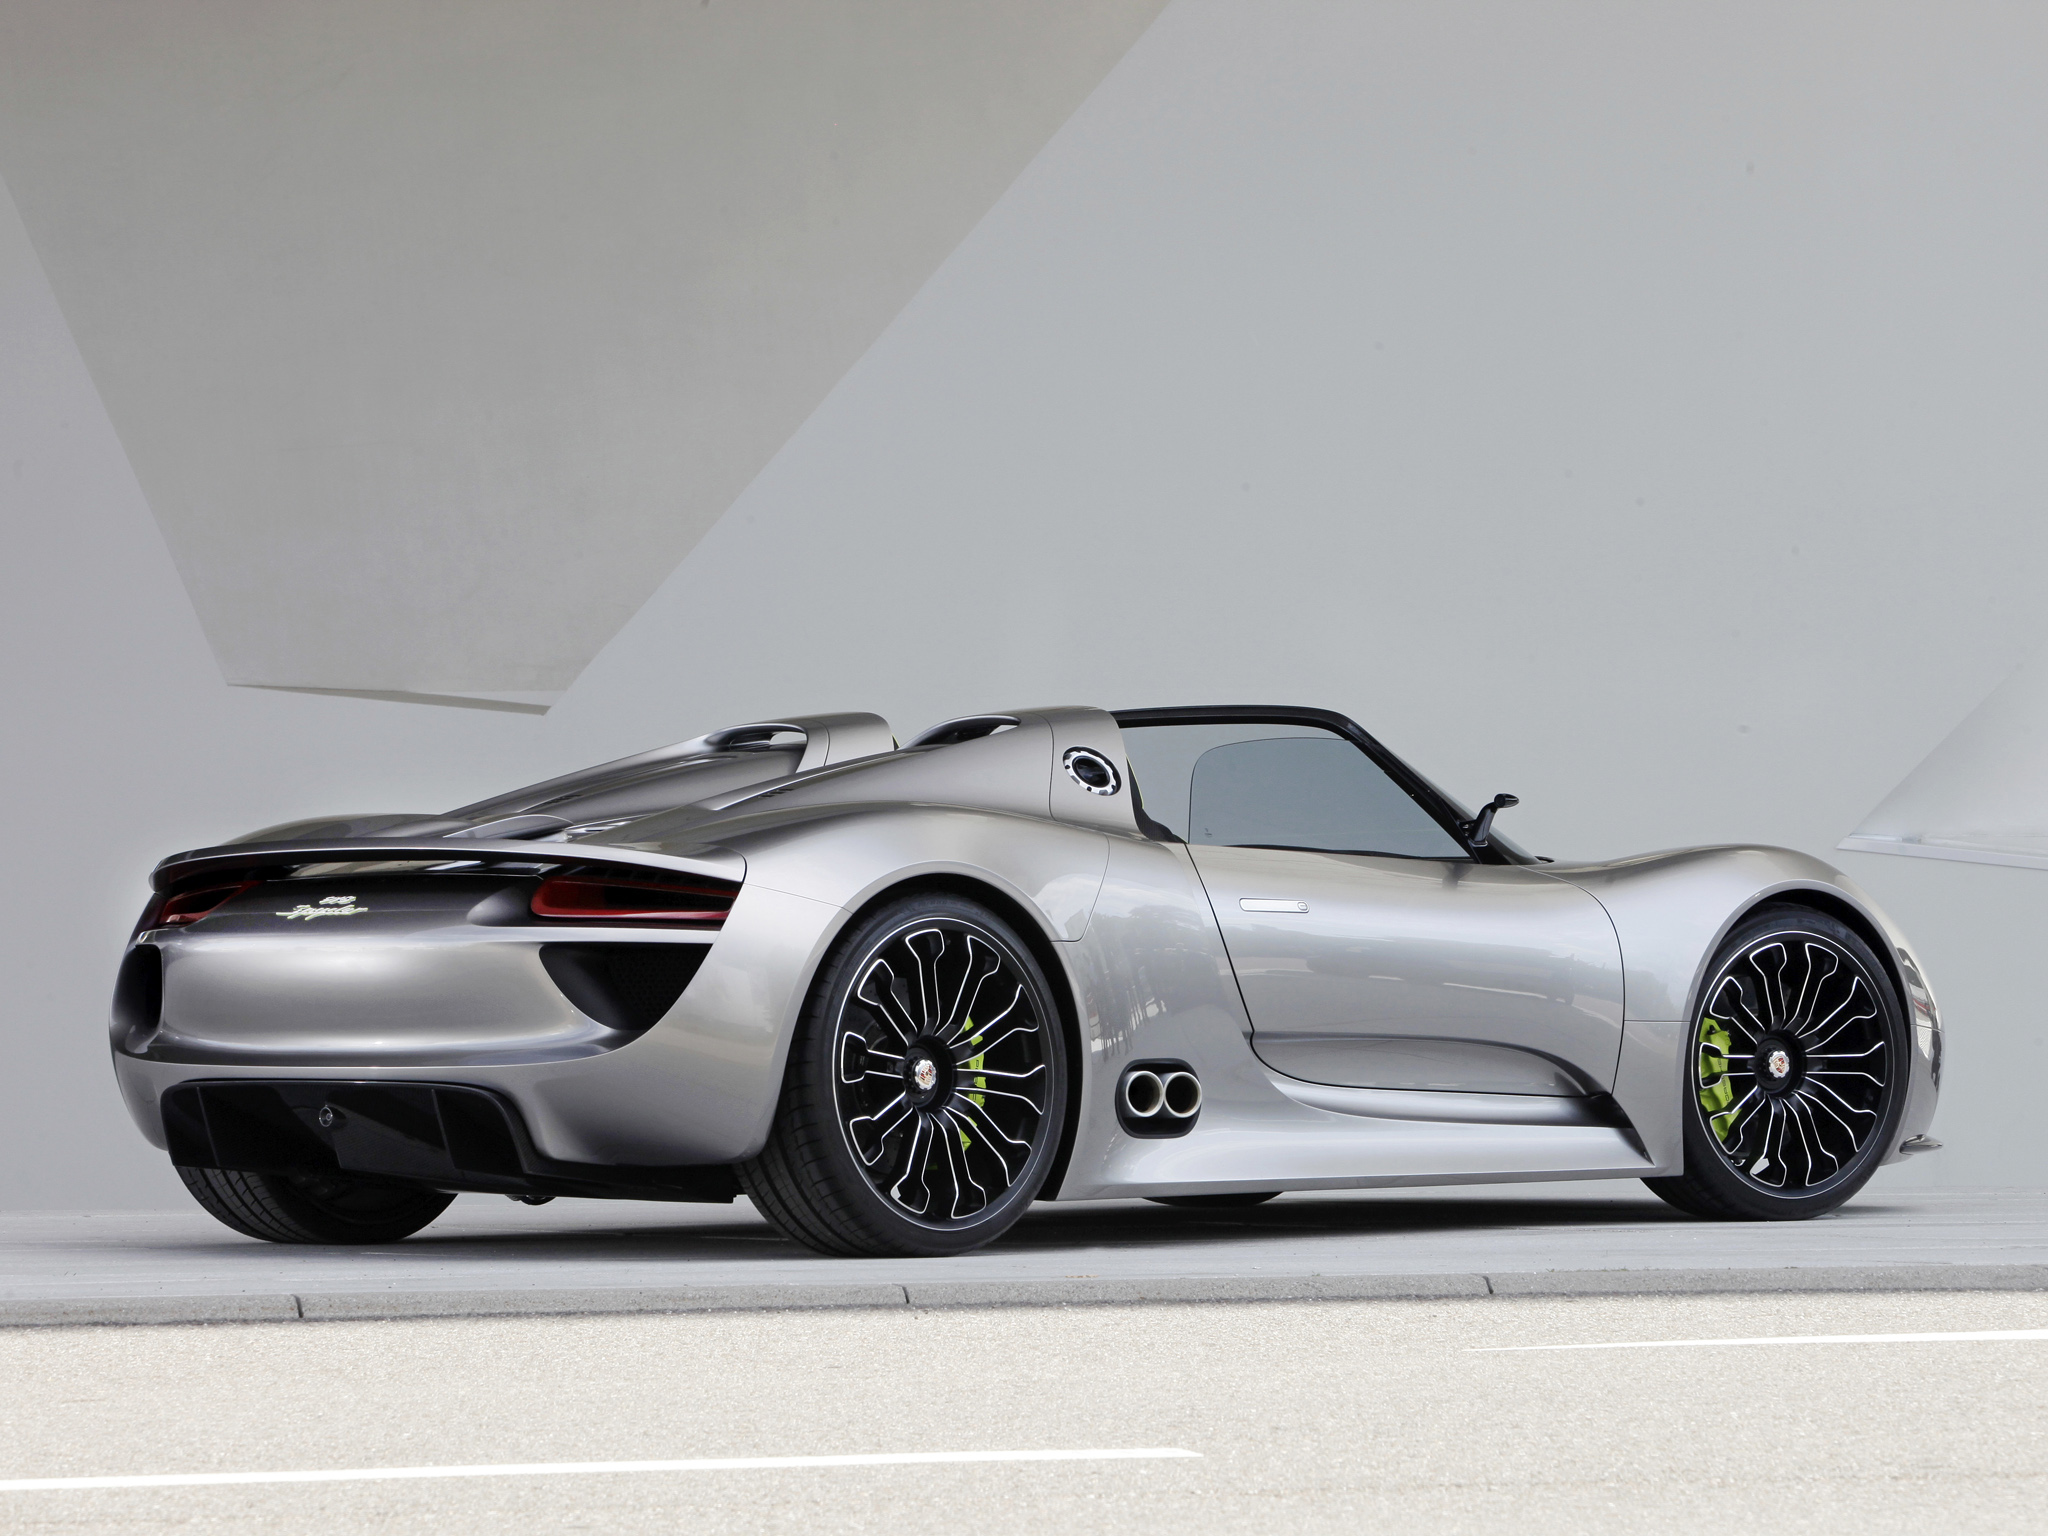 4k Car Wallpaper Free Download 2010 Porsche 918 Spyder Concept Supercar Supercars Jd